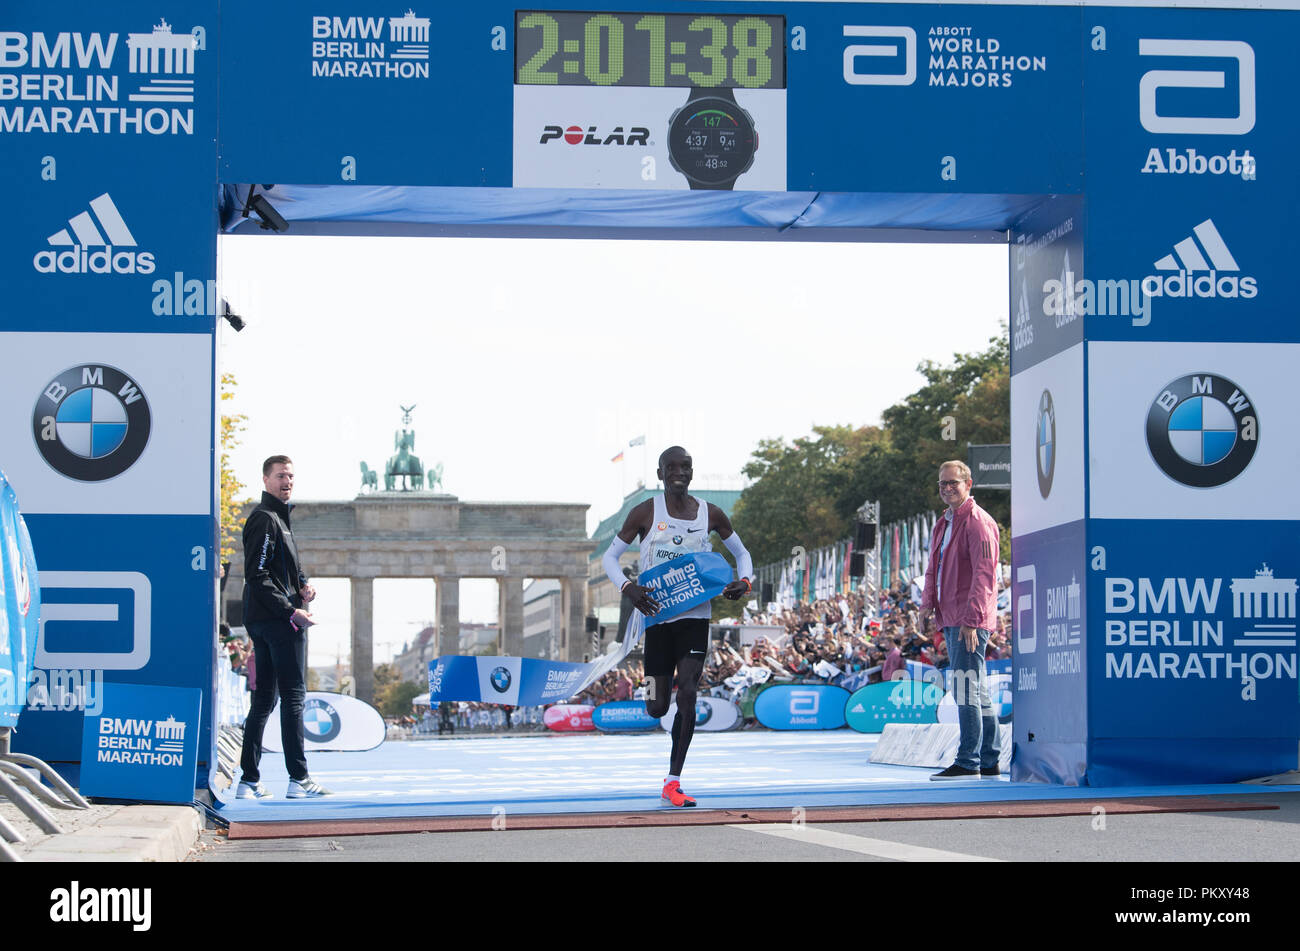 Berlin, Germany. 16th September 2018. Kenyan Eliud Kipchoge wins the 45th BMW Berlin Marathon in 2:01:39 hours. He sets a world record and remained 1:18 minutes below the four-year-old top time of his compatriot Kimetto. Photo: Soeren Stache/dpa Credit: dpa picture alliance/Alamy Live News Credit: dpa picture alliance/Alamy Live News Credit: dpa picture alliance/Alamy Live News - Stock Image